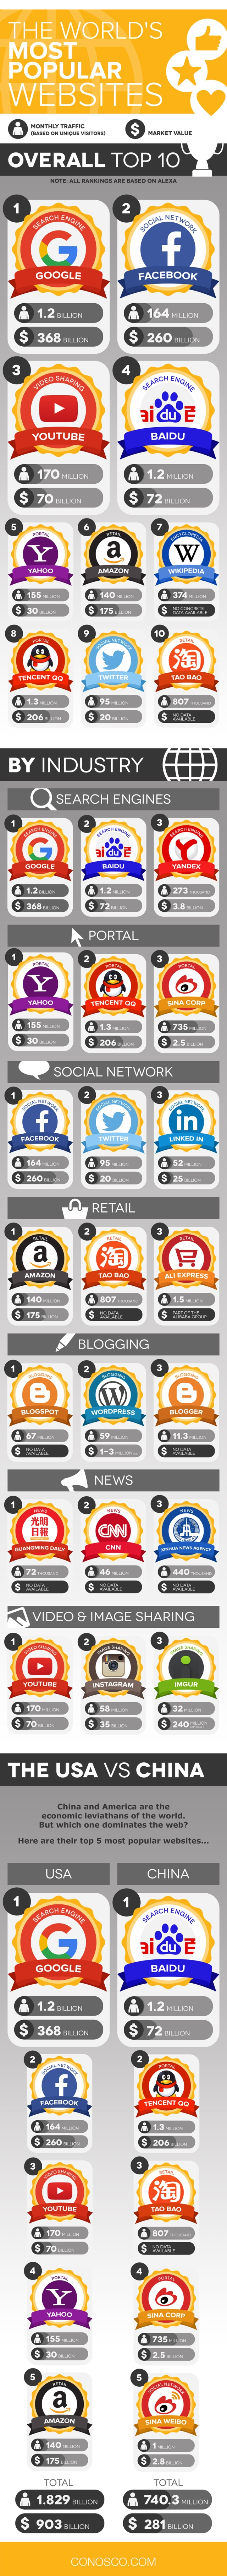 The World's Most Popular Websites How Does Your Site Compare